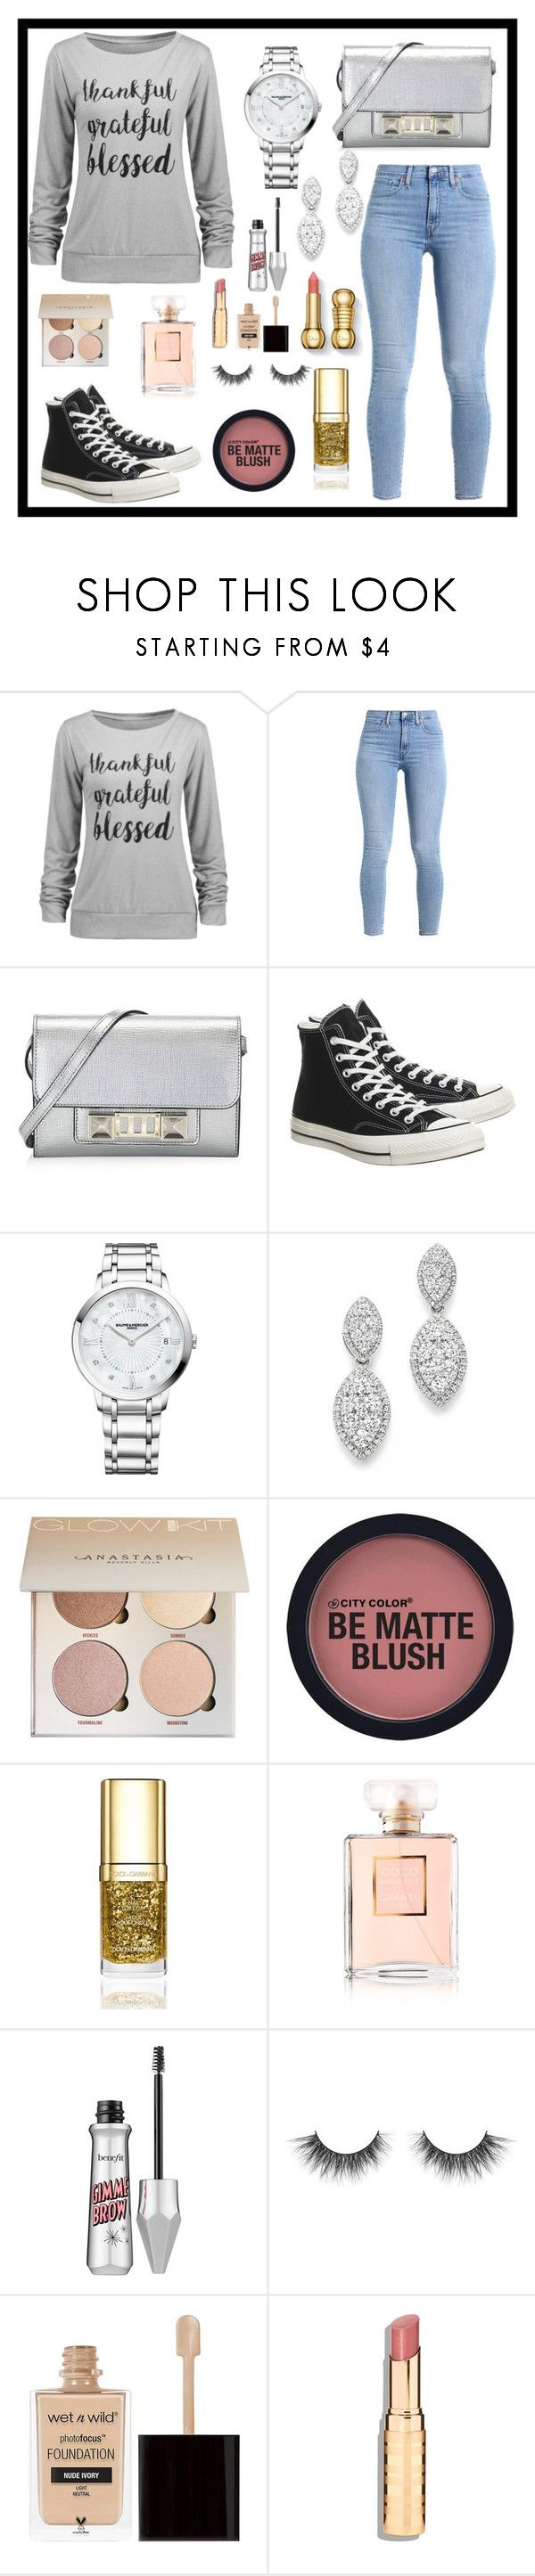 """""""Love"""" by natalie83322 ❤ liked on Polyvore featuring Proenza Schouler, Converse, Baume & Mercier, Bloomingdale's, Dolce&Gabbana, Chanel and Wet n Wild"""